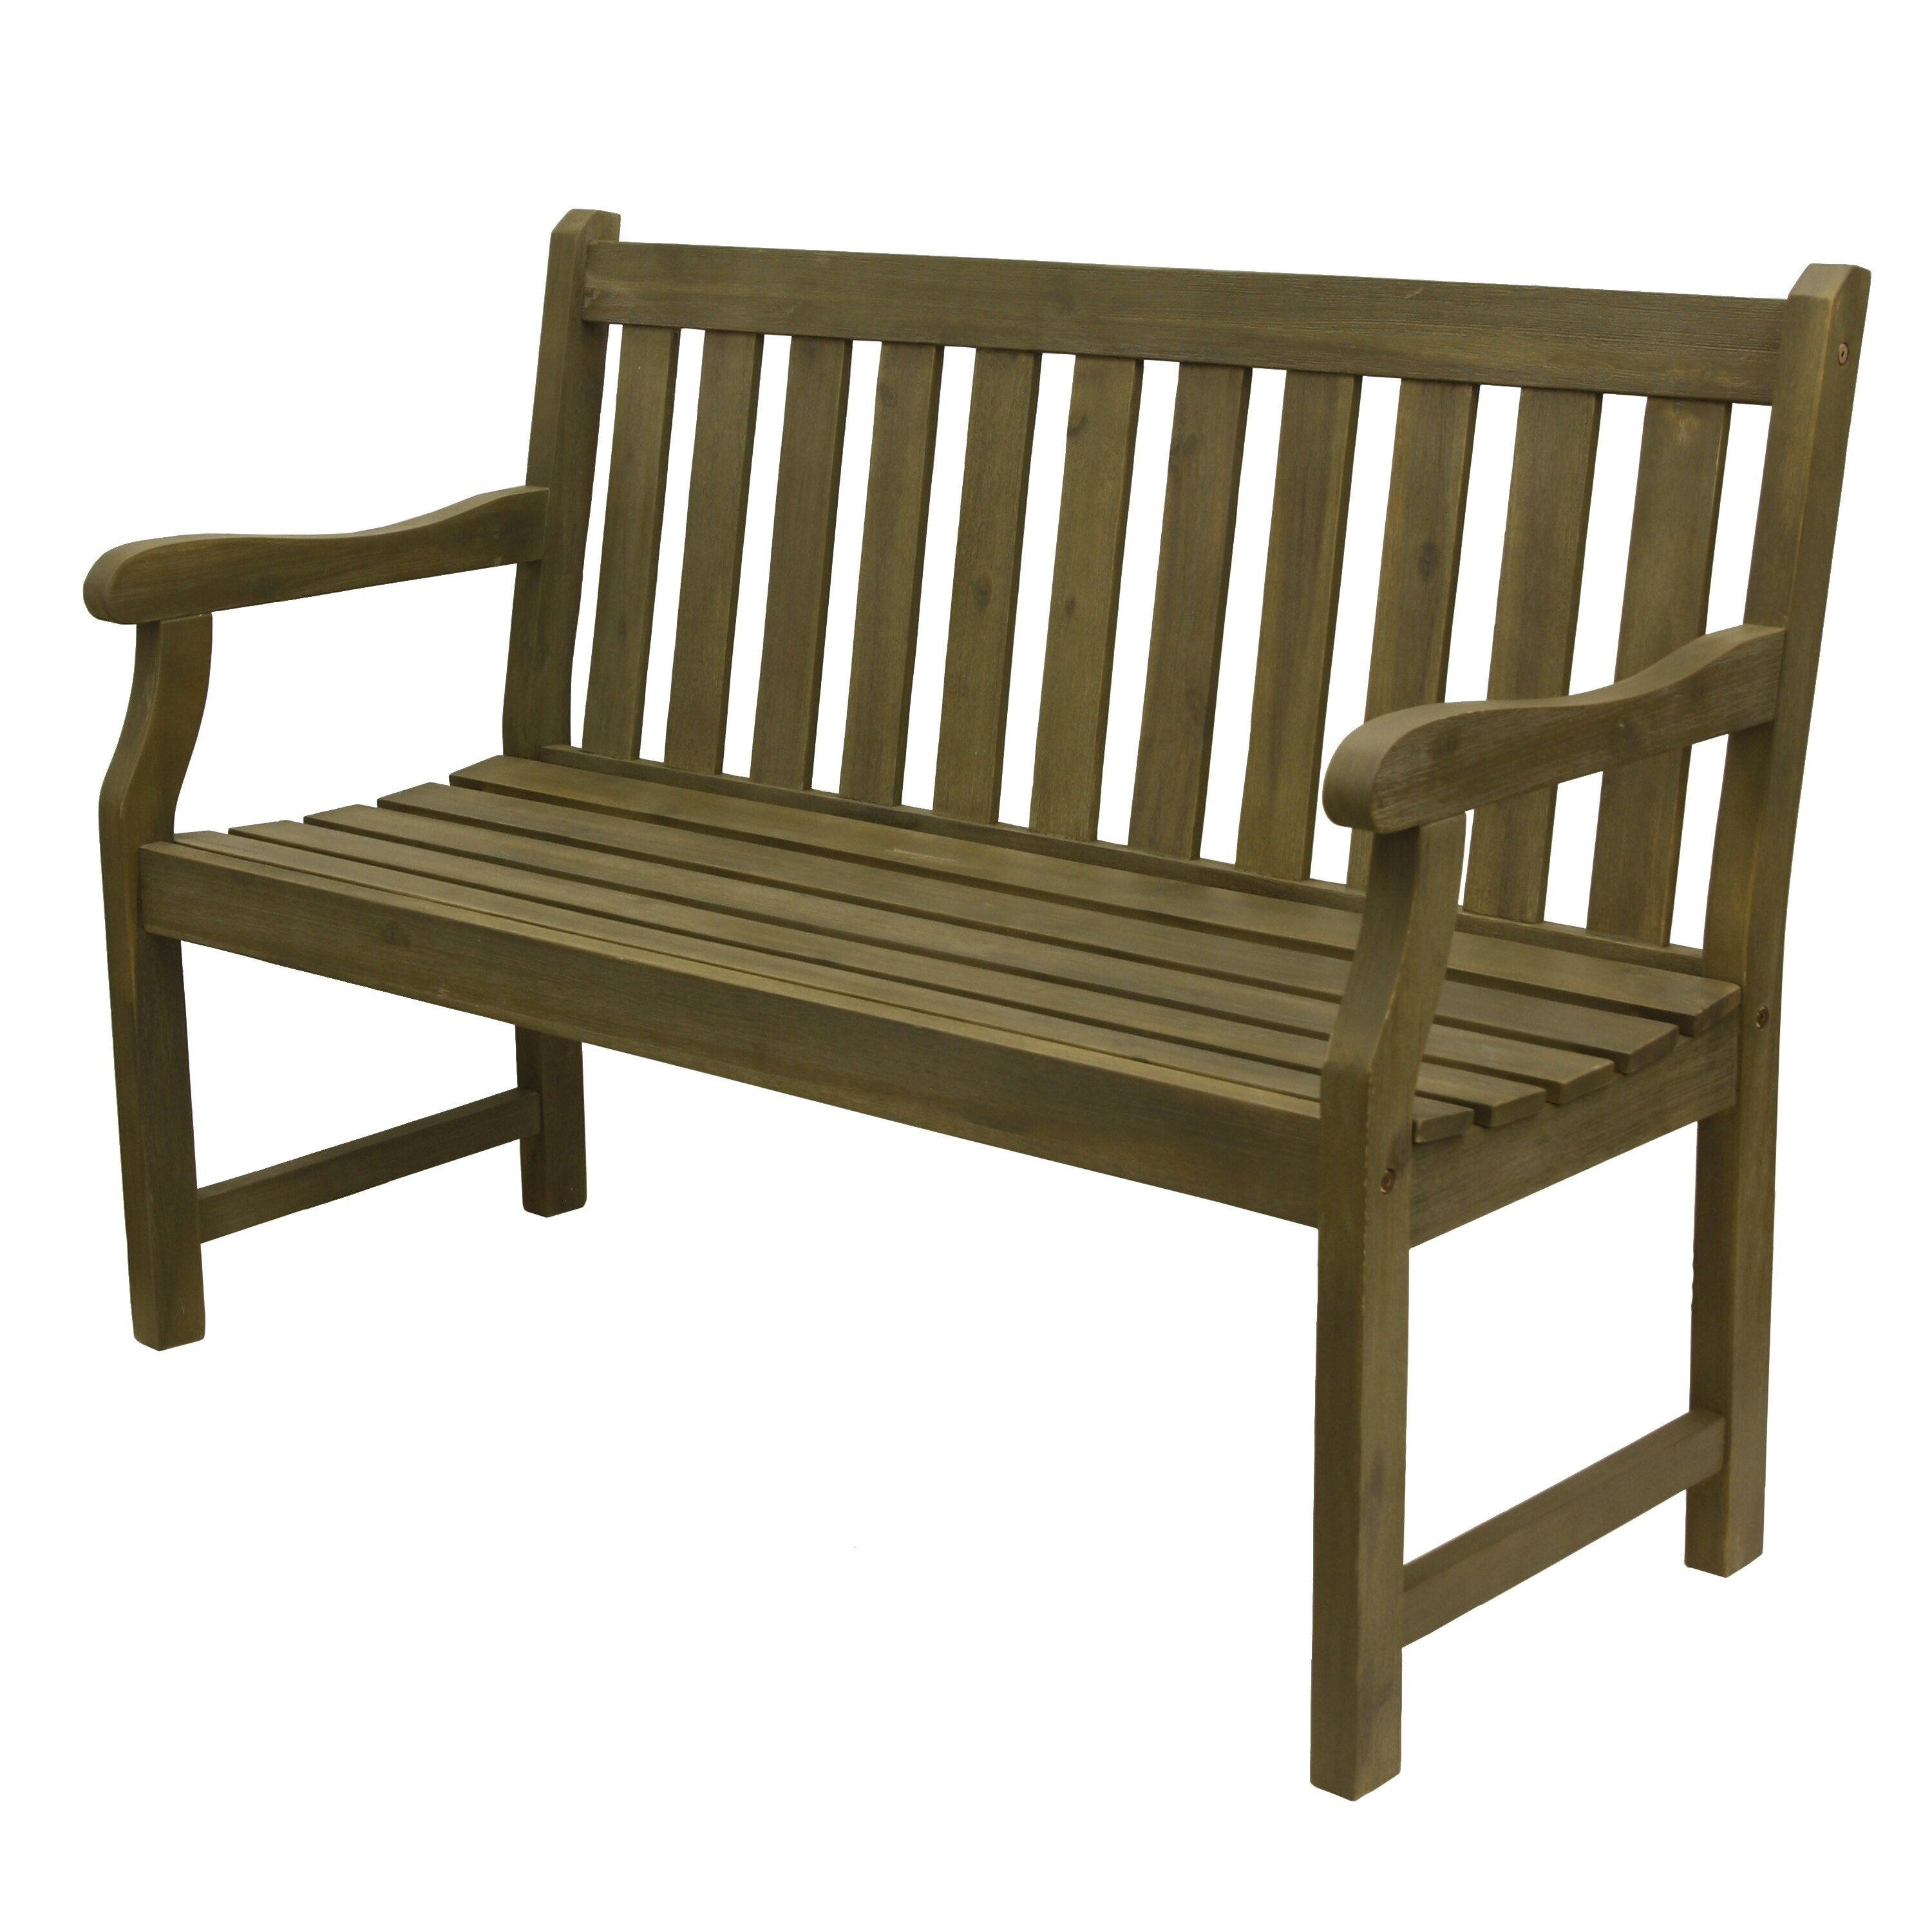 Shop Henley 2 Seat Outdoor Bench   Free Shipping Today   Overstock.com    20657805